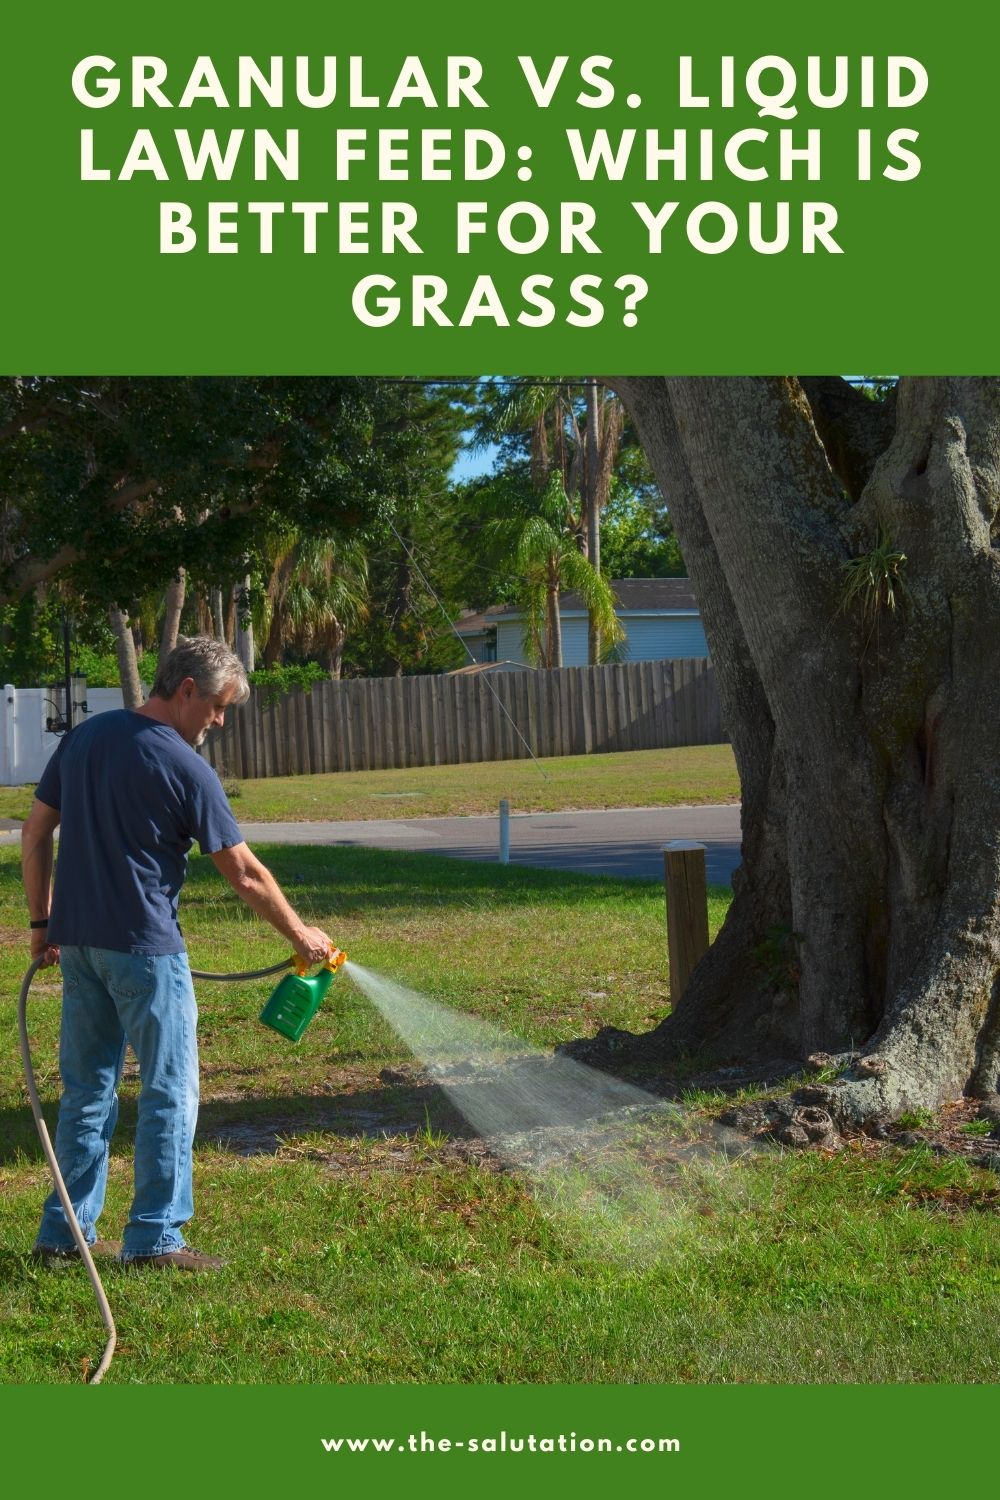 Granular vs. Liquid Lawn Feed Which is Better for Your Grass 2